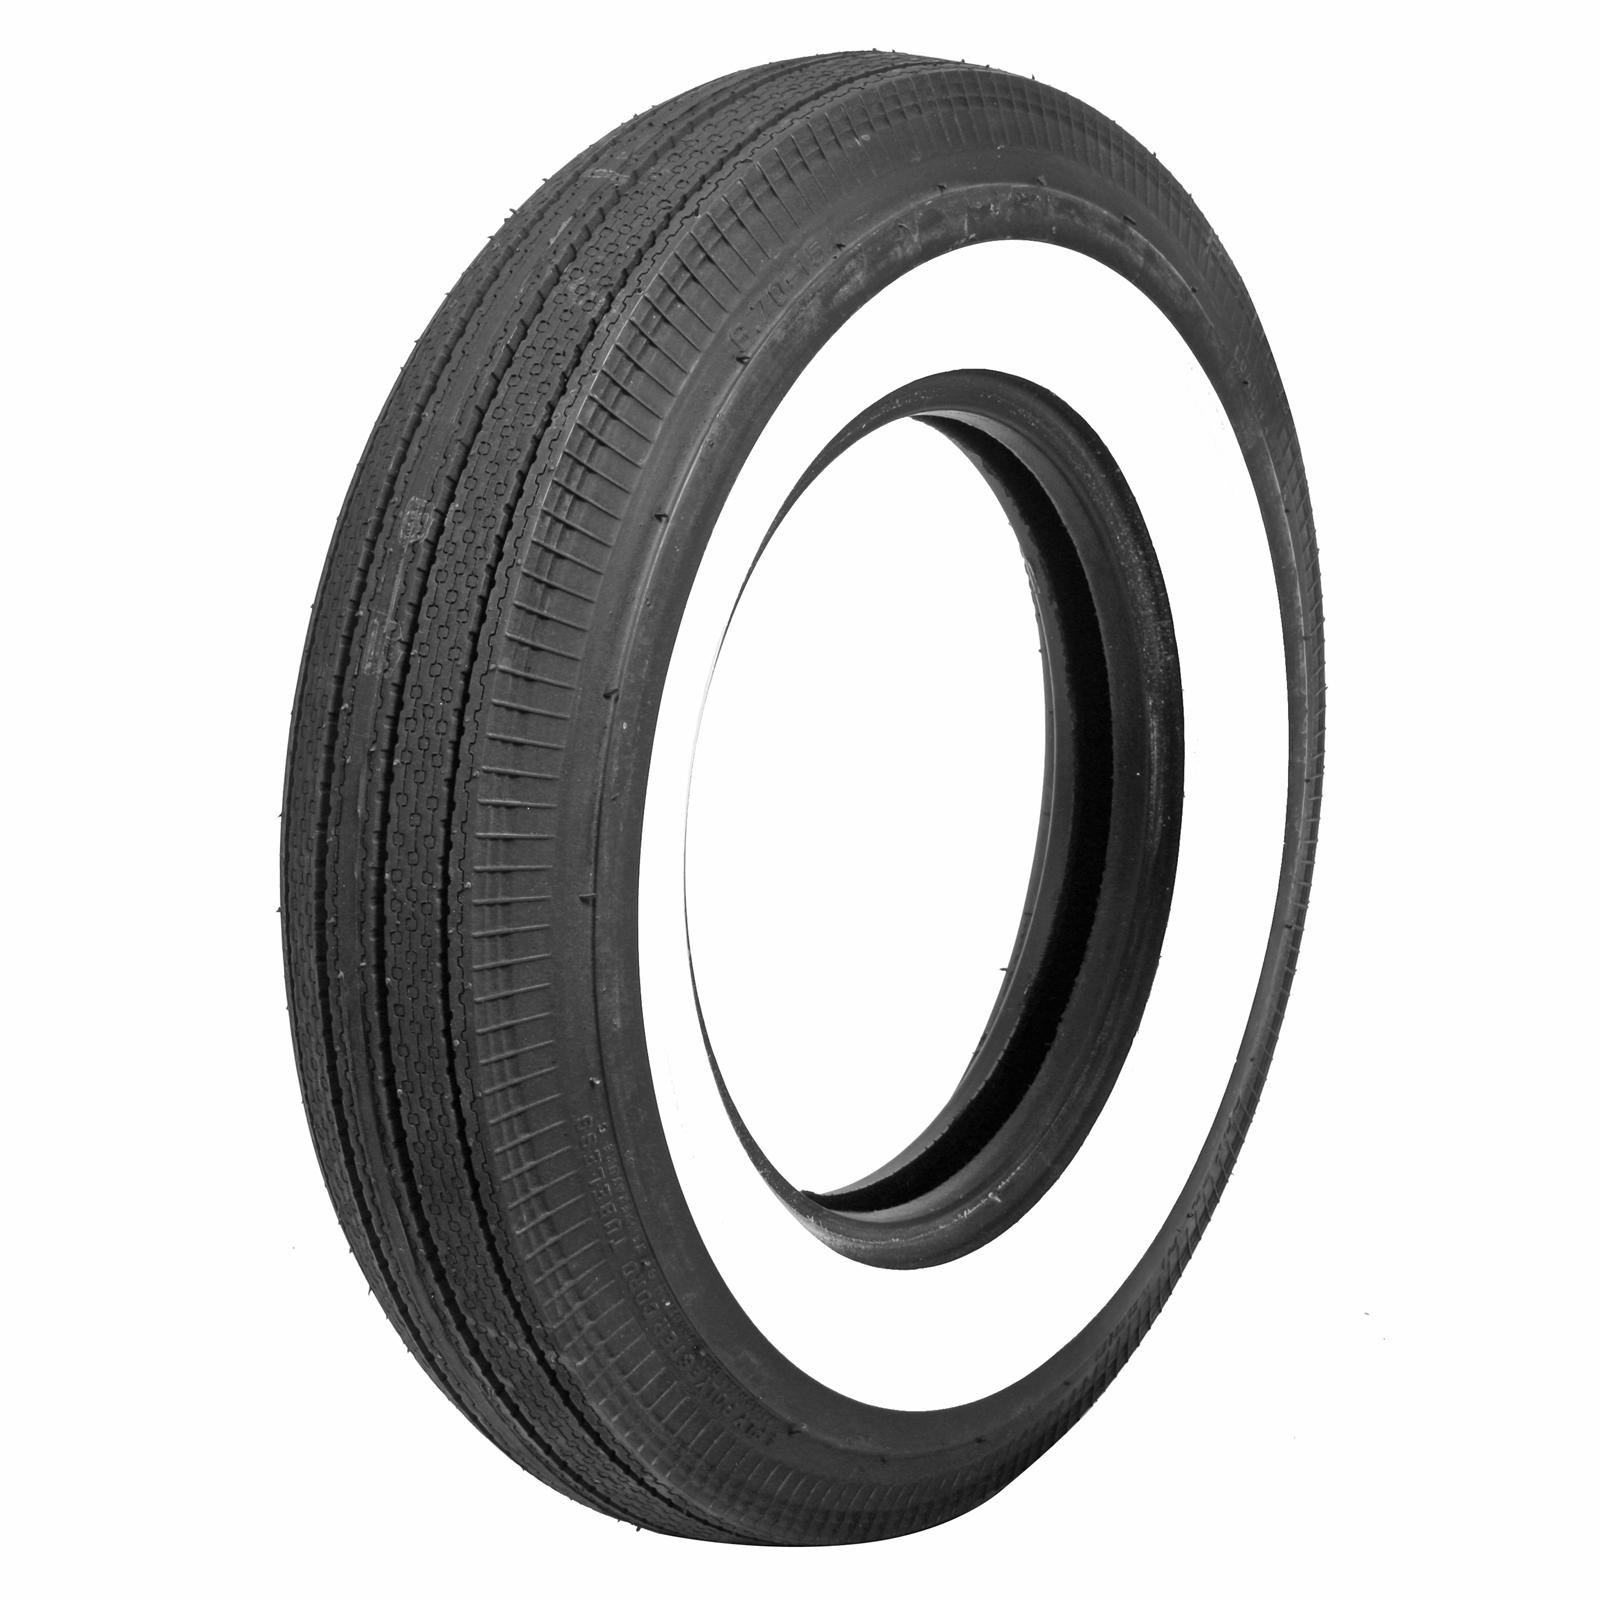 Bias Ply Tires >> Details About Coker Classic Bias Ply Tire 6 70 15 Bias Ply 2 750 In Whitewall 57700 Each